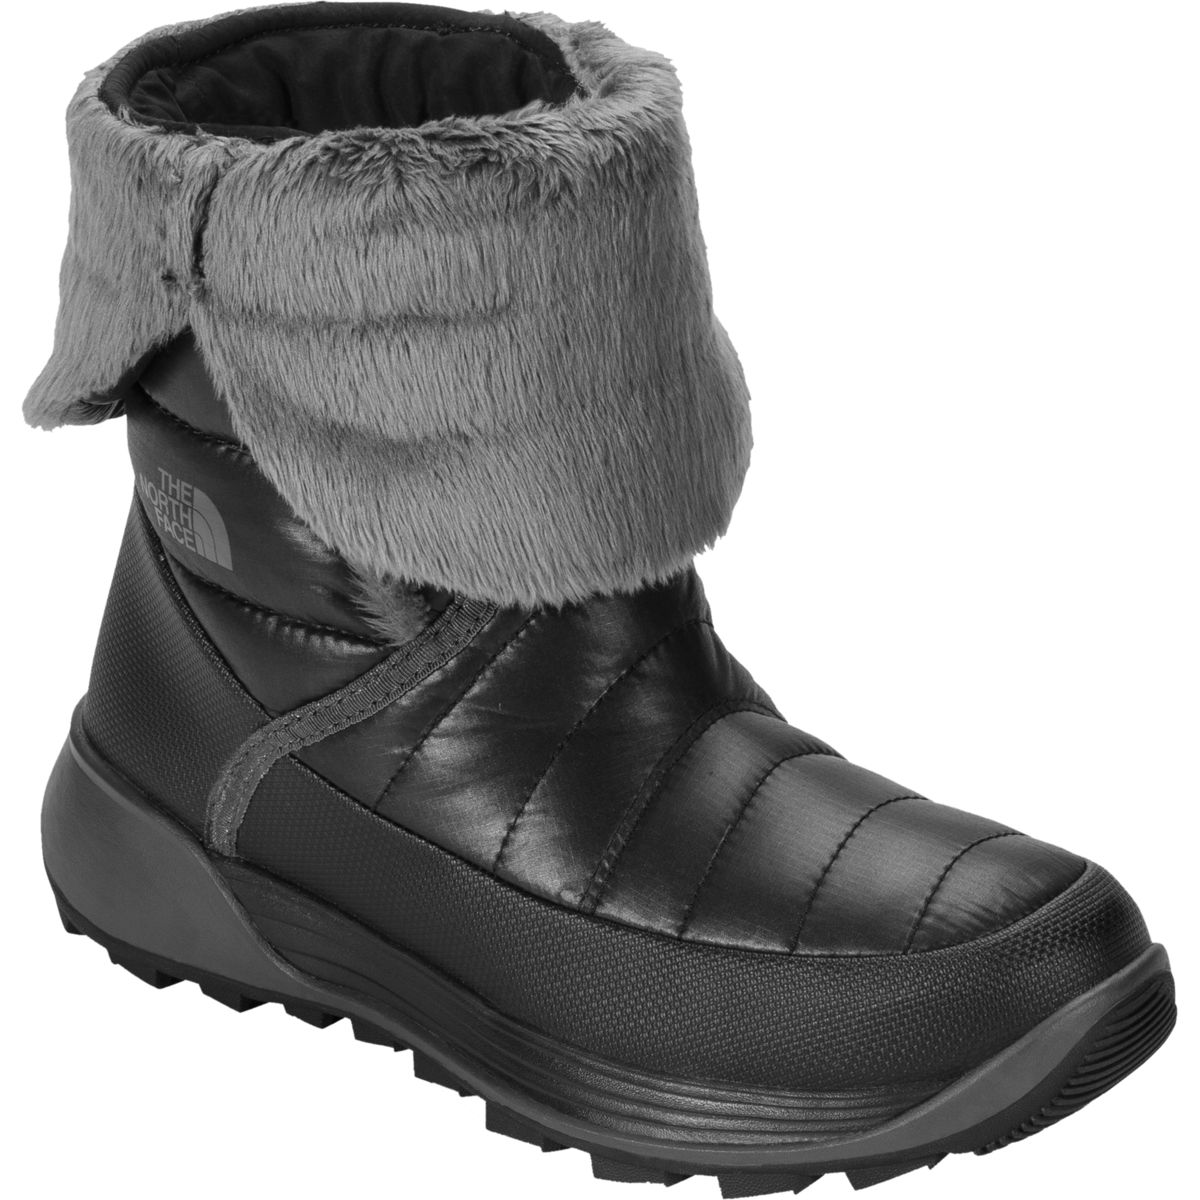 The North Face Amore II Boot